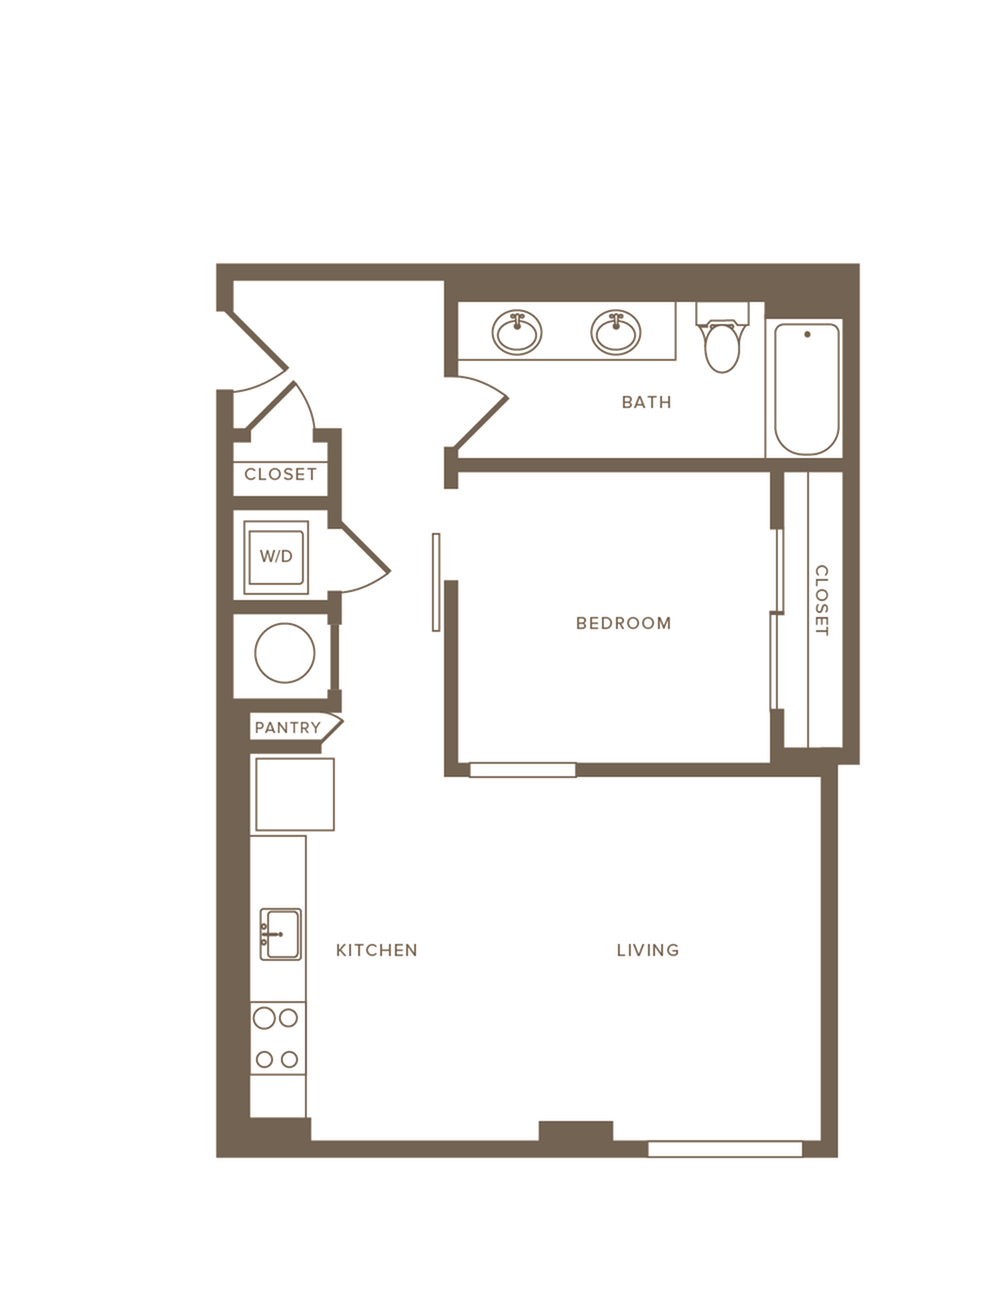 643 to 666 square foot one bedroom one bath with dual sinks apartment floorplan image